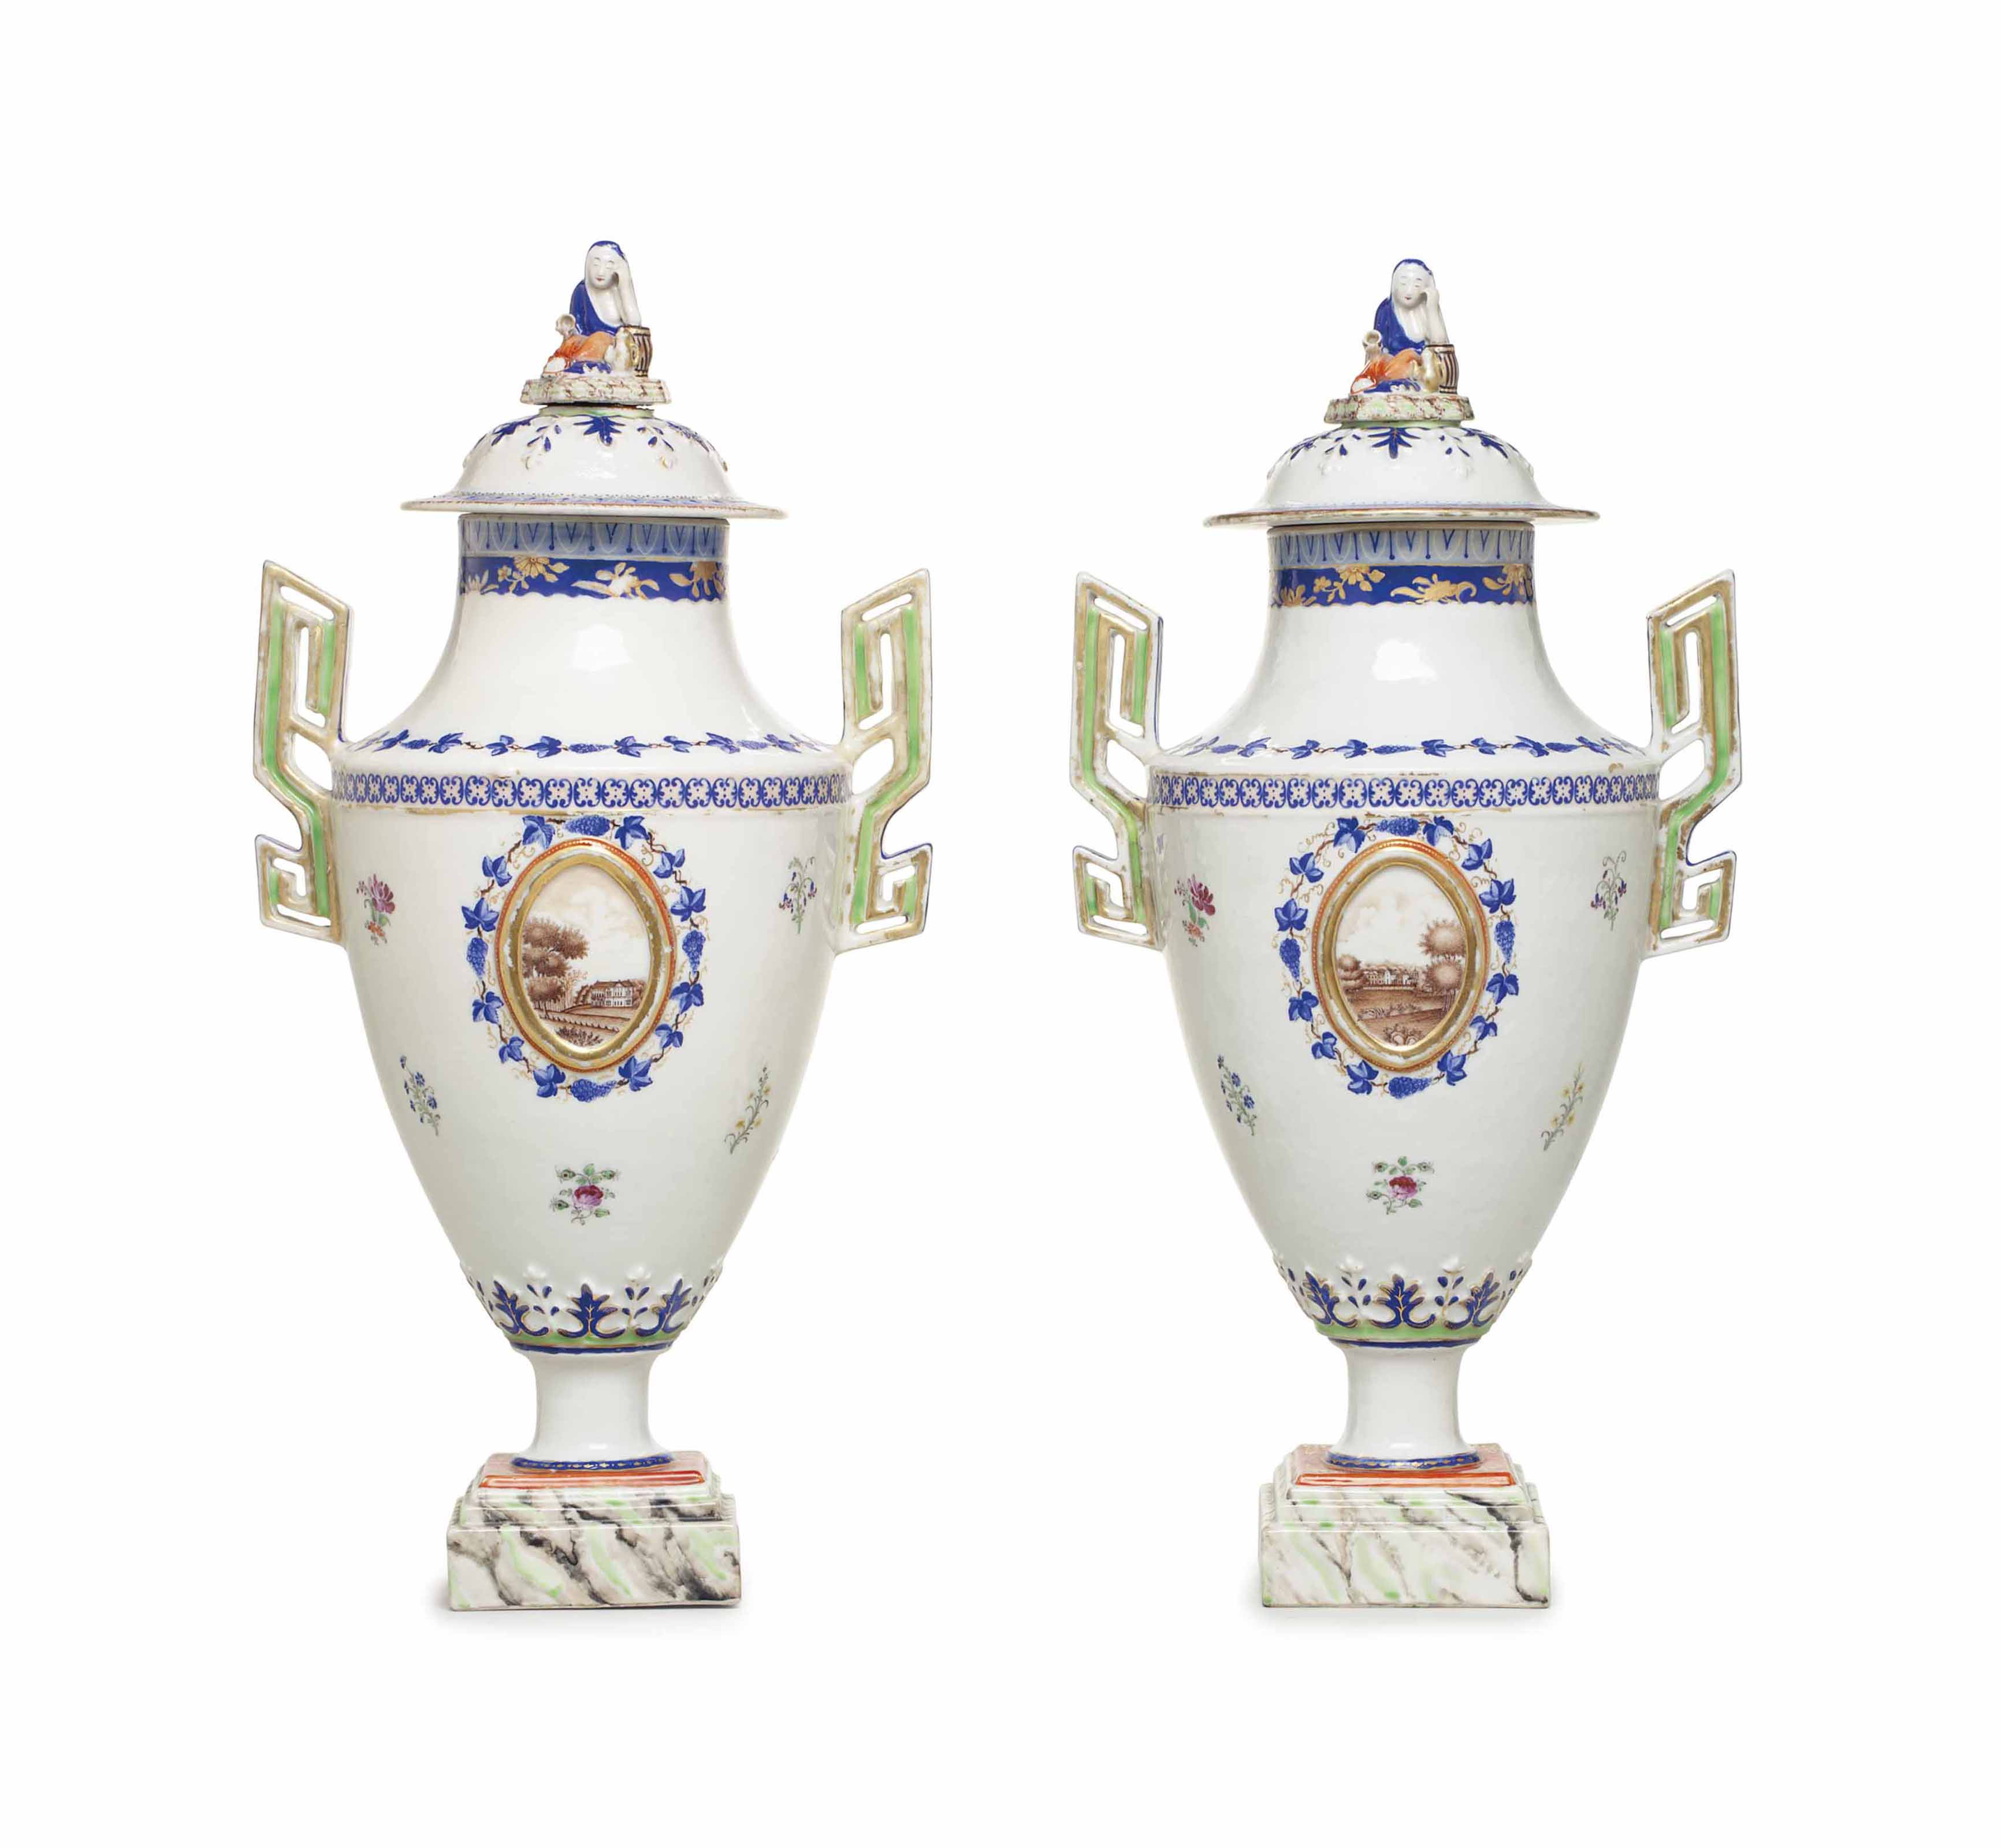 A LARGE PAIR OF NEOCLASSICAL U